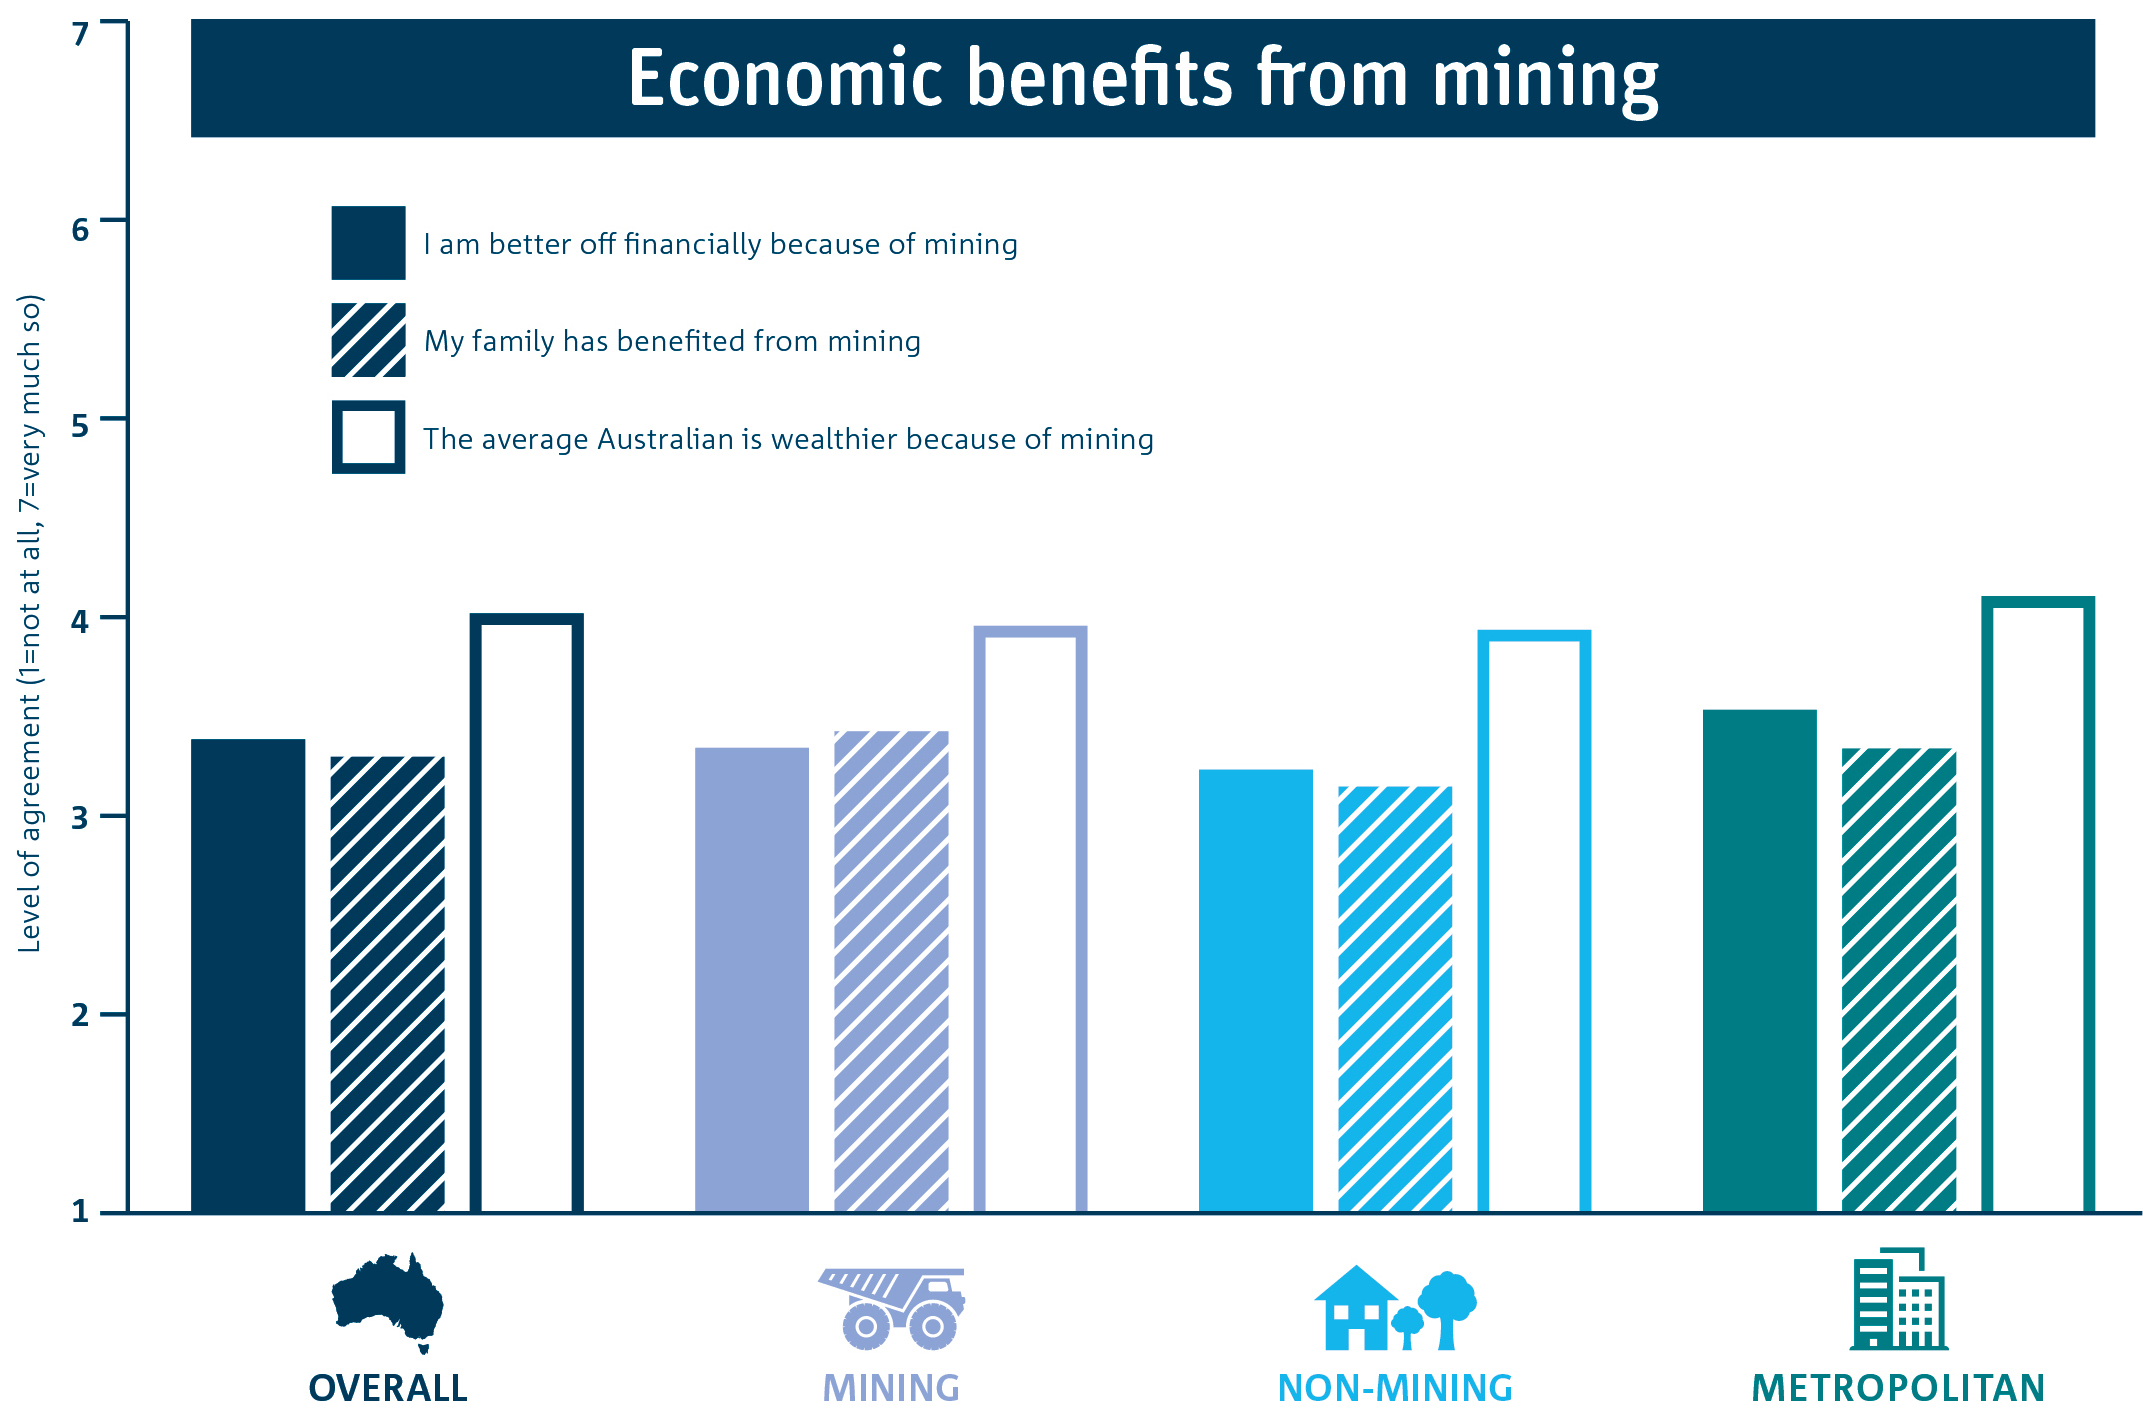 Bar graph of mean levels of perceived economic benefits from mining overall, and by region.